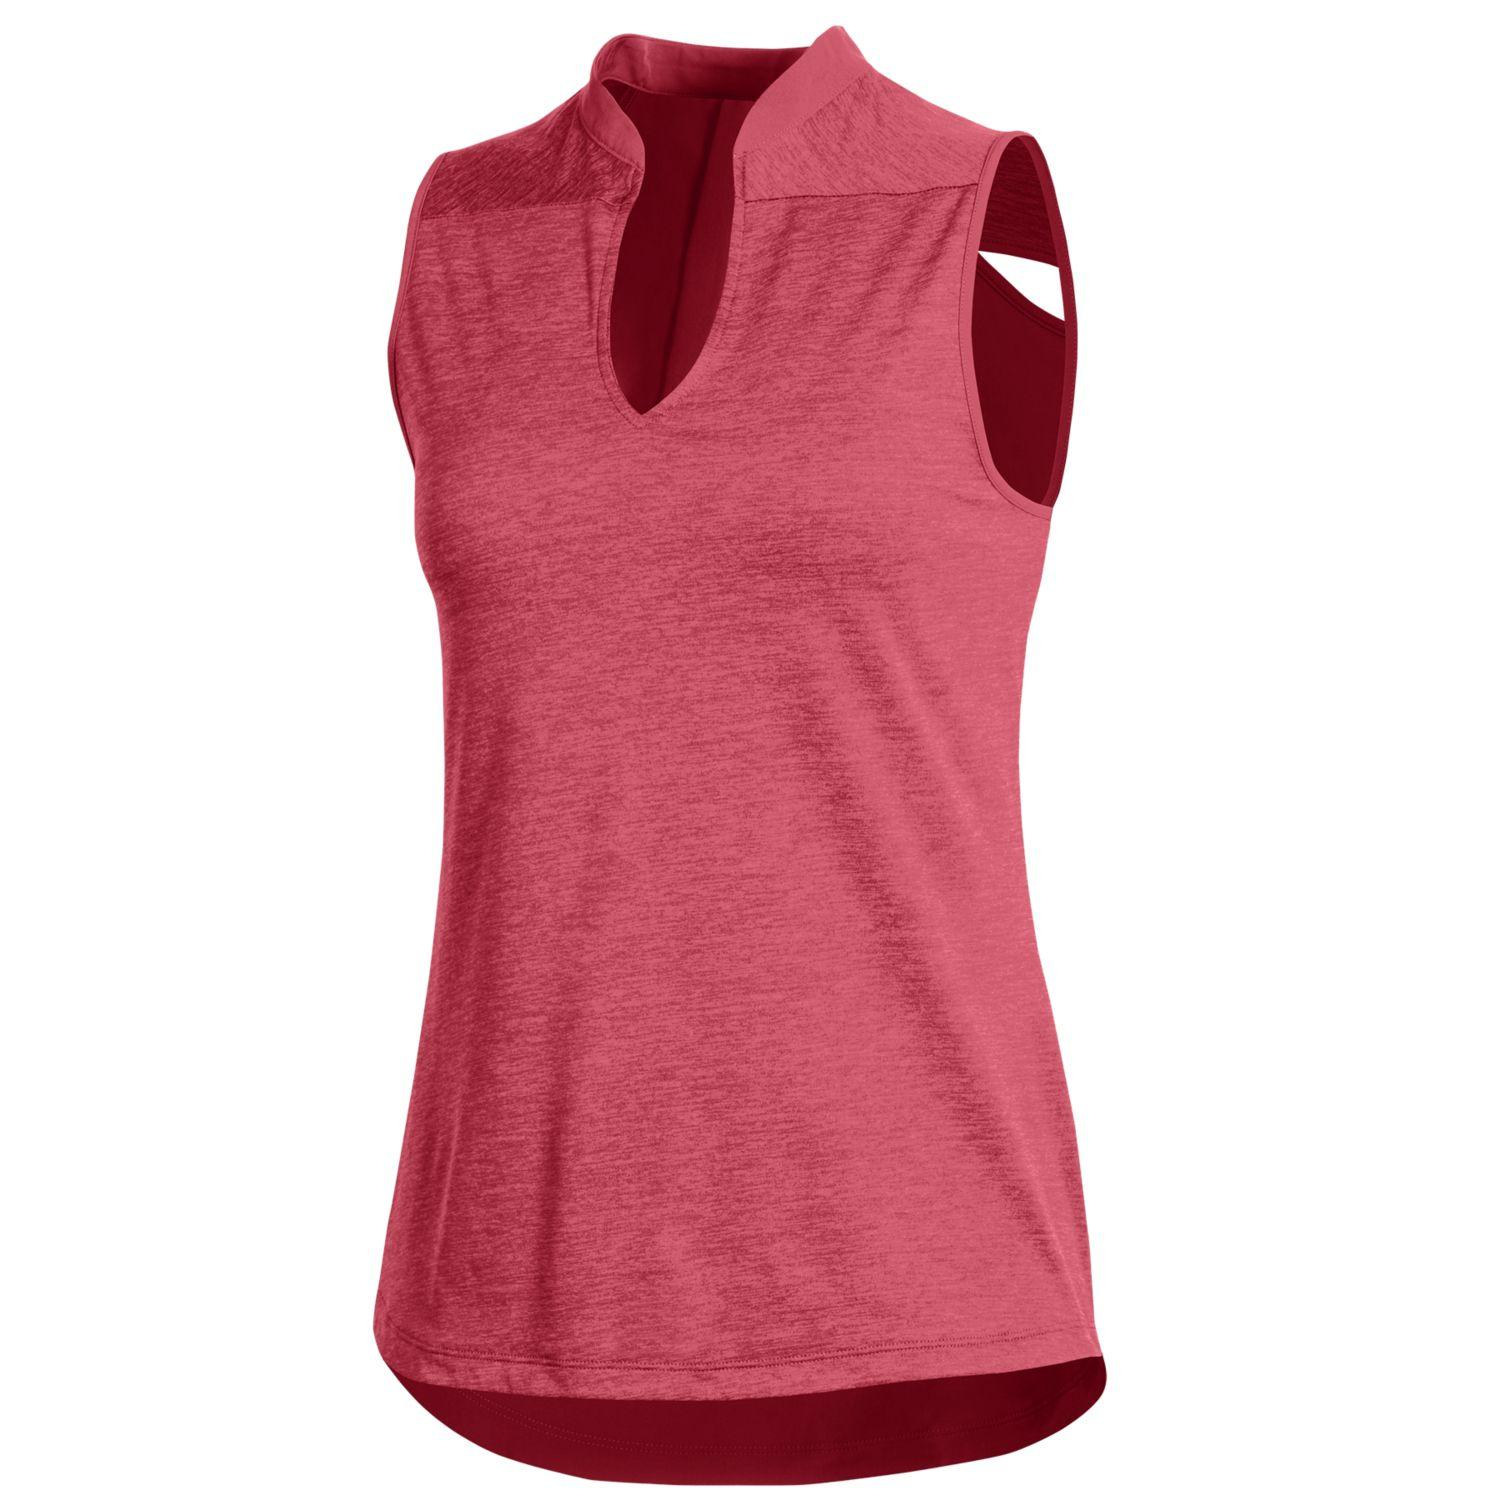 Under Armour Women's Tour Tips Sleeveless Heather Polo